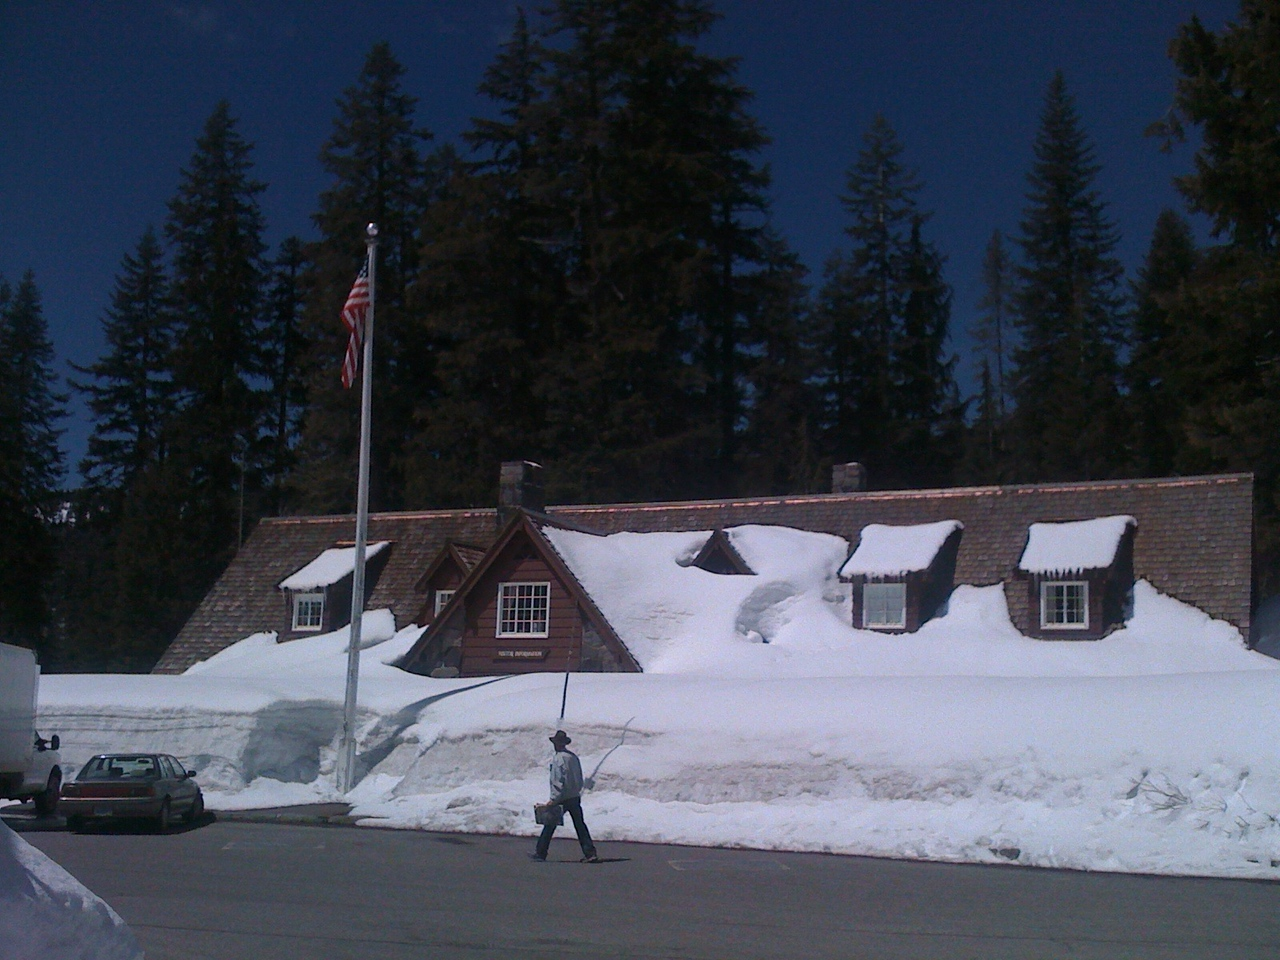 I guess we won't be going in thru the front door today.  :)